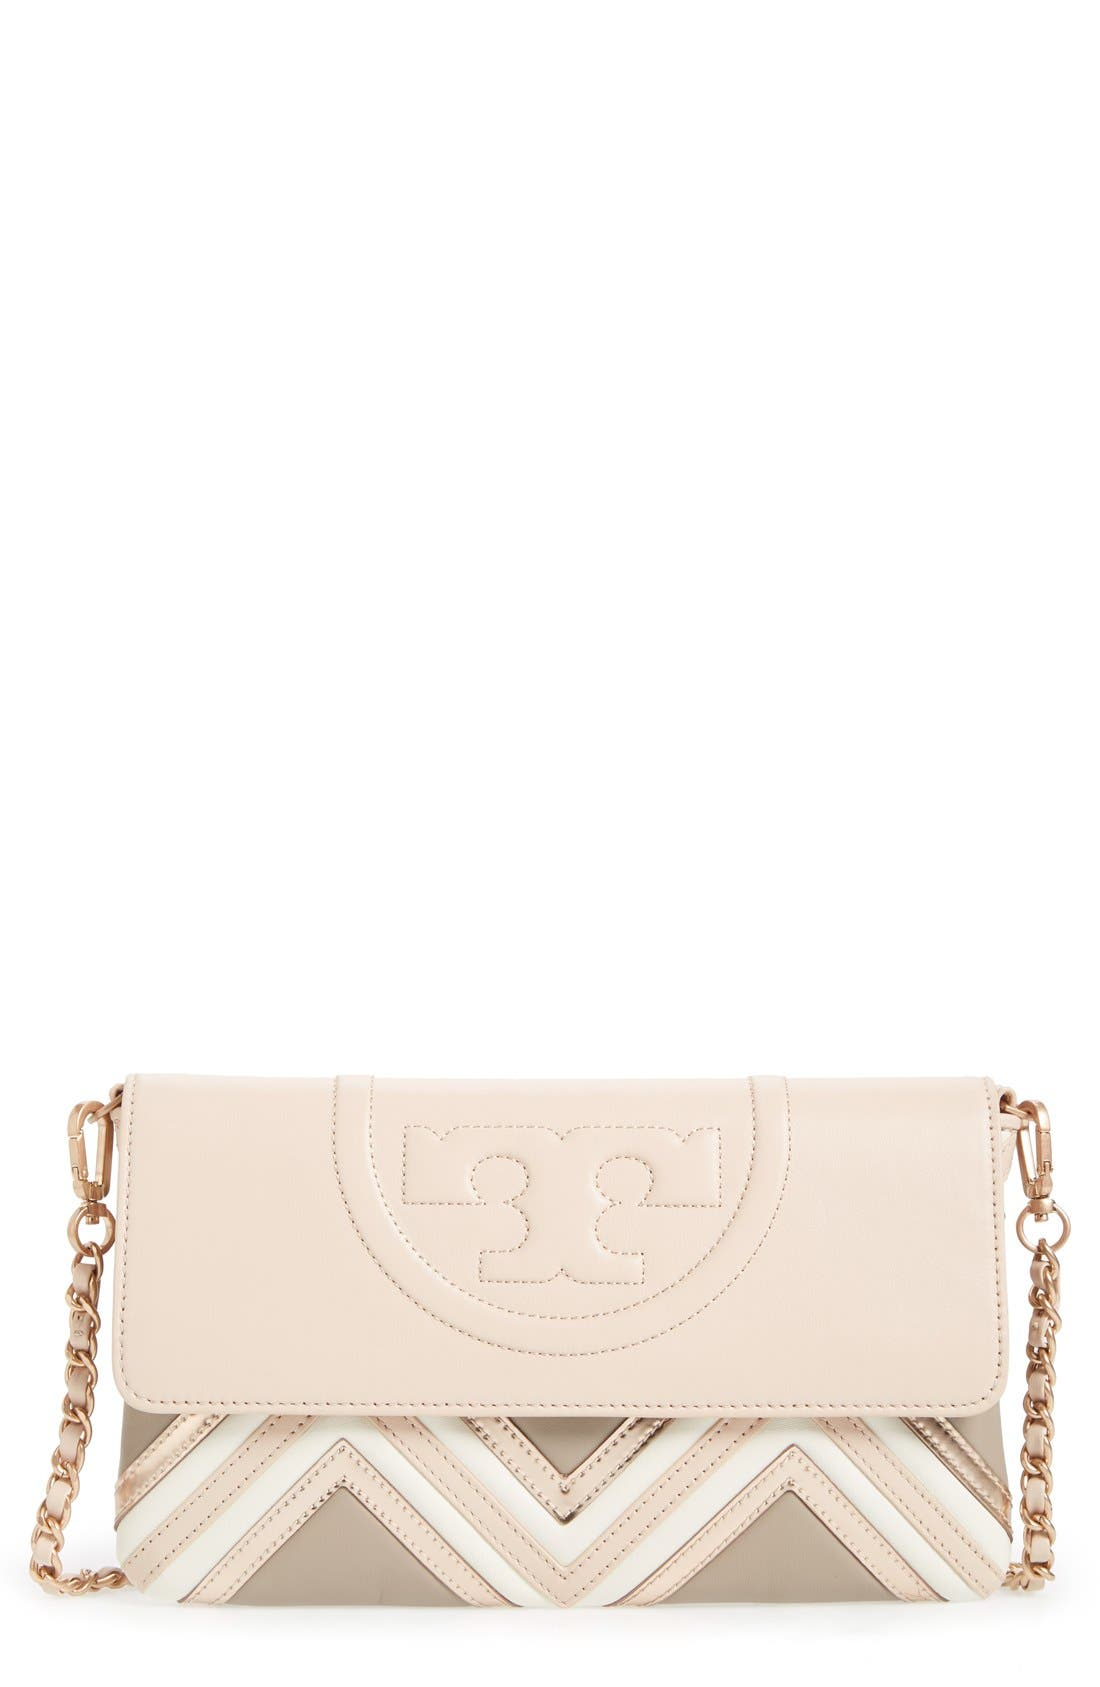 Alternate Image 1 Selected - Tory Burch 'Fleming Geo' Convertible Leather Clutch